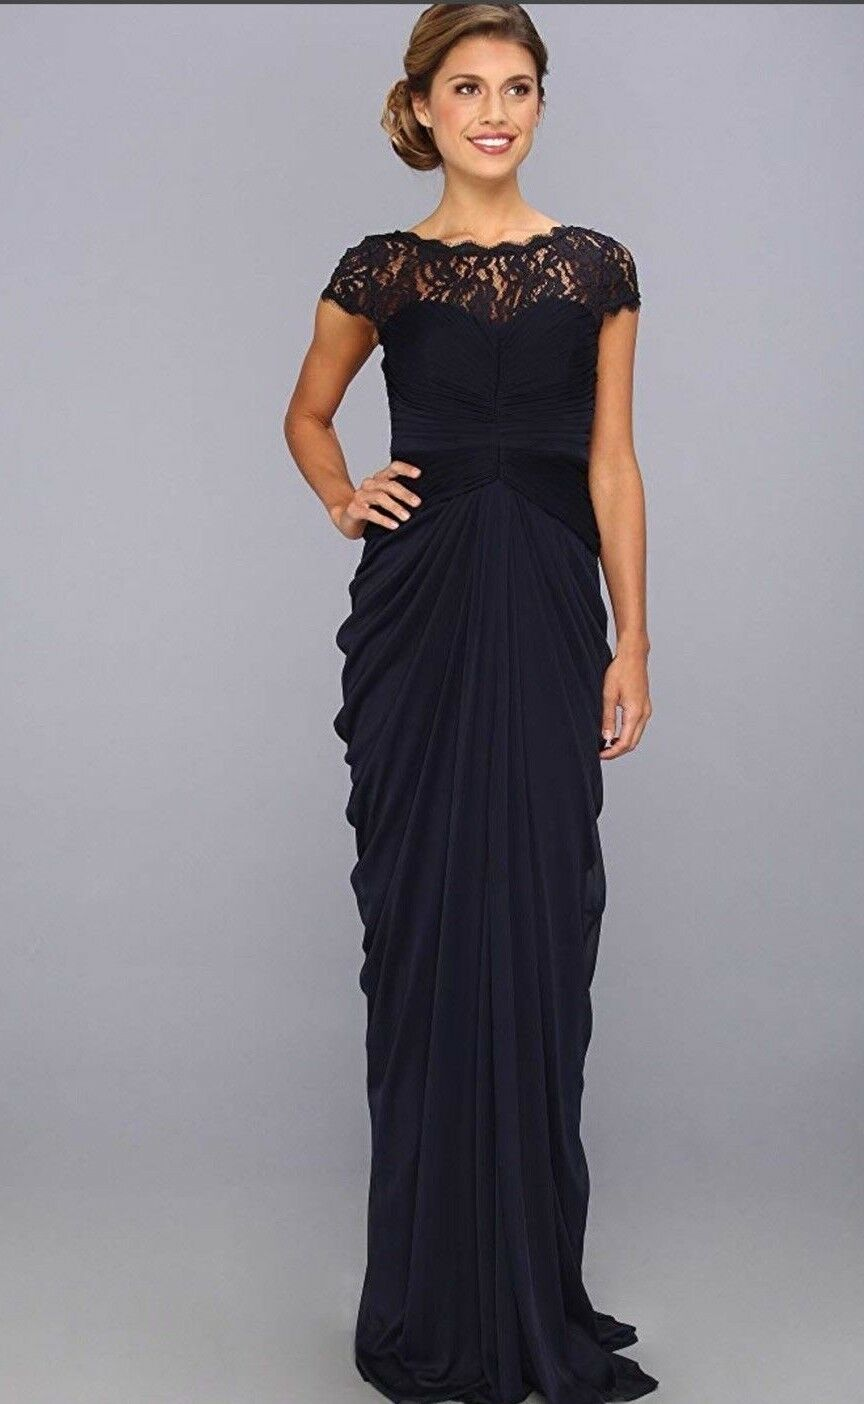 ADRIANNA PAPELL NAVY GOWN NEW WITH TAG INK SIZE 10 LENGTH 63  RETAIL